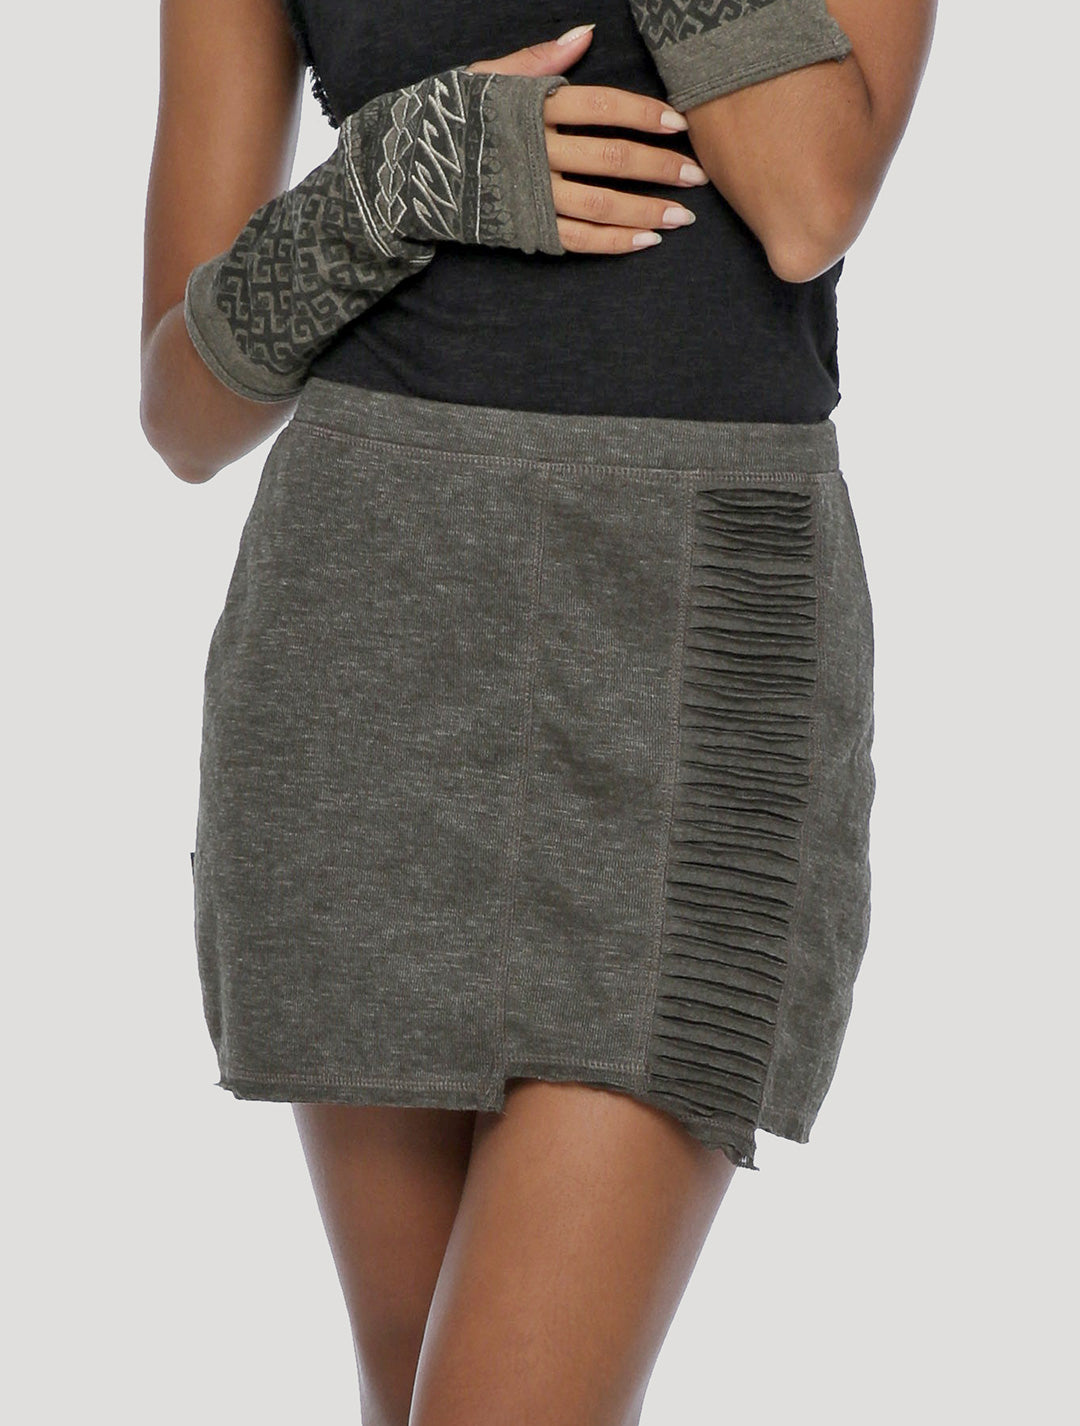 Psylo Fashion ethical alternative streetwear Freque Mini Skirt in grey charcoal